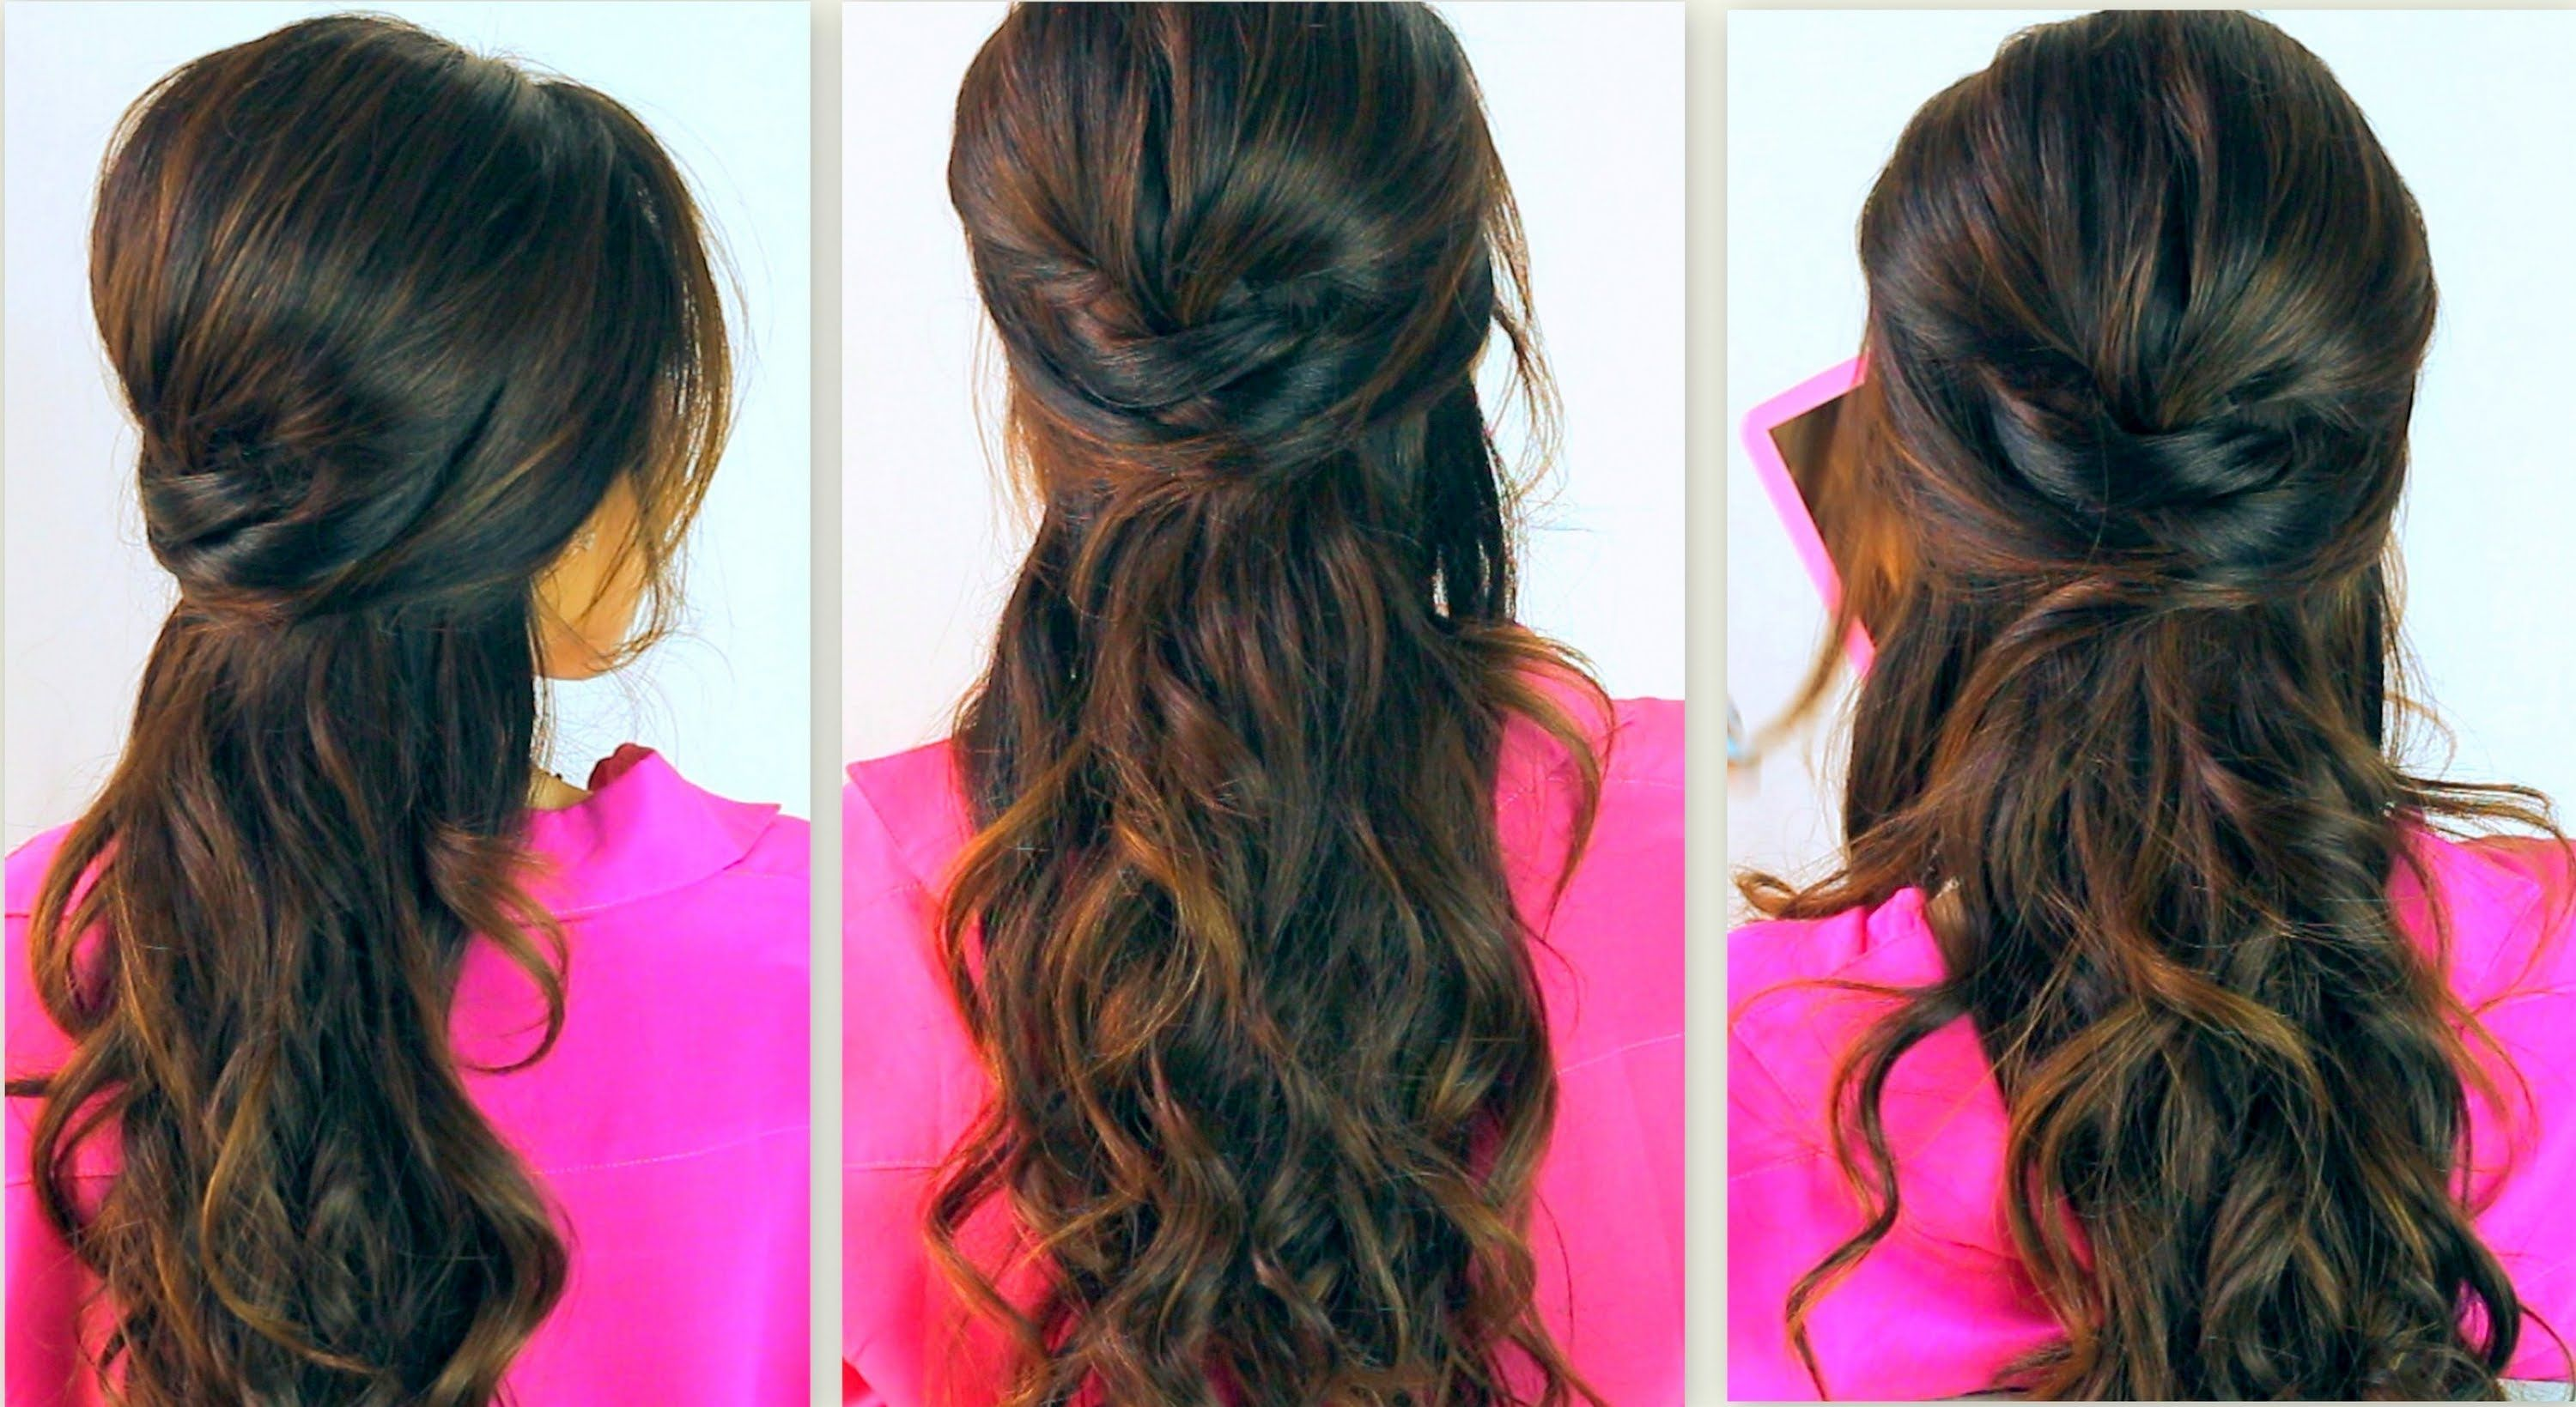 Wondrous 1000 Images About Hoco Hairstyles On Pinterest Formal Hair Short Hairstyles For Black Women Fulllsitofus